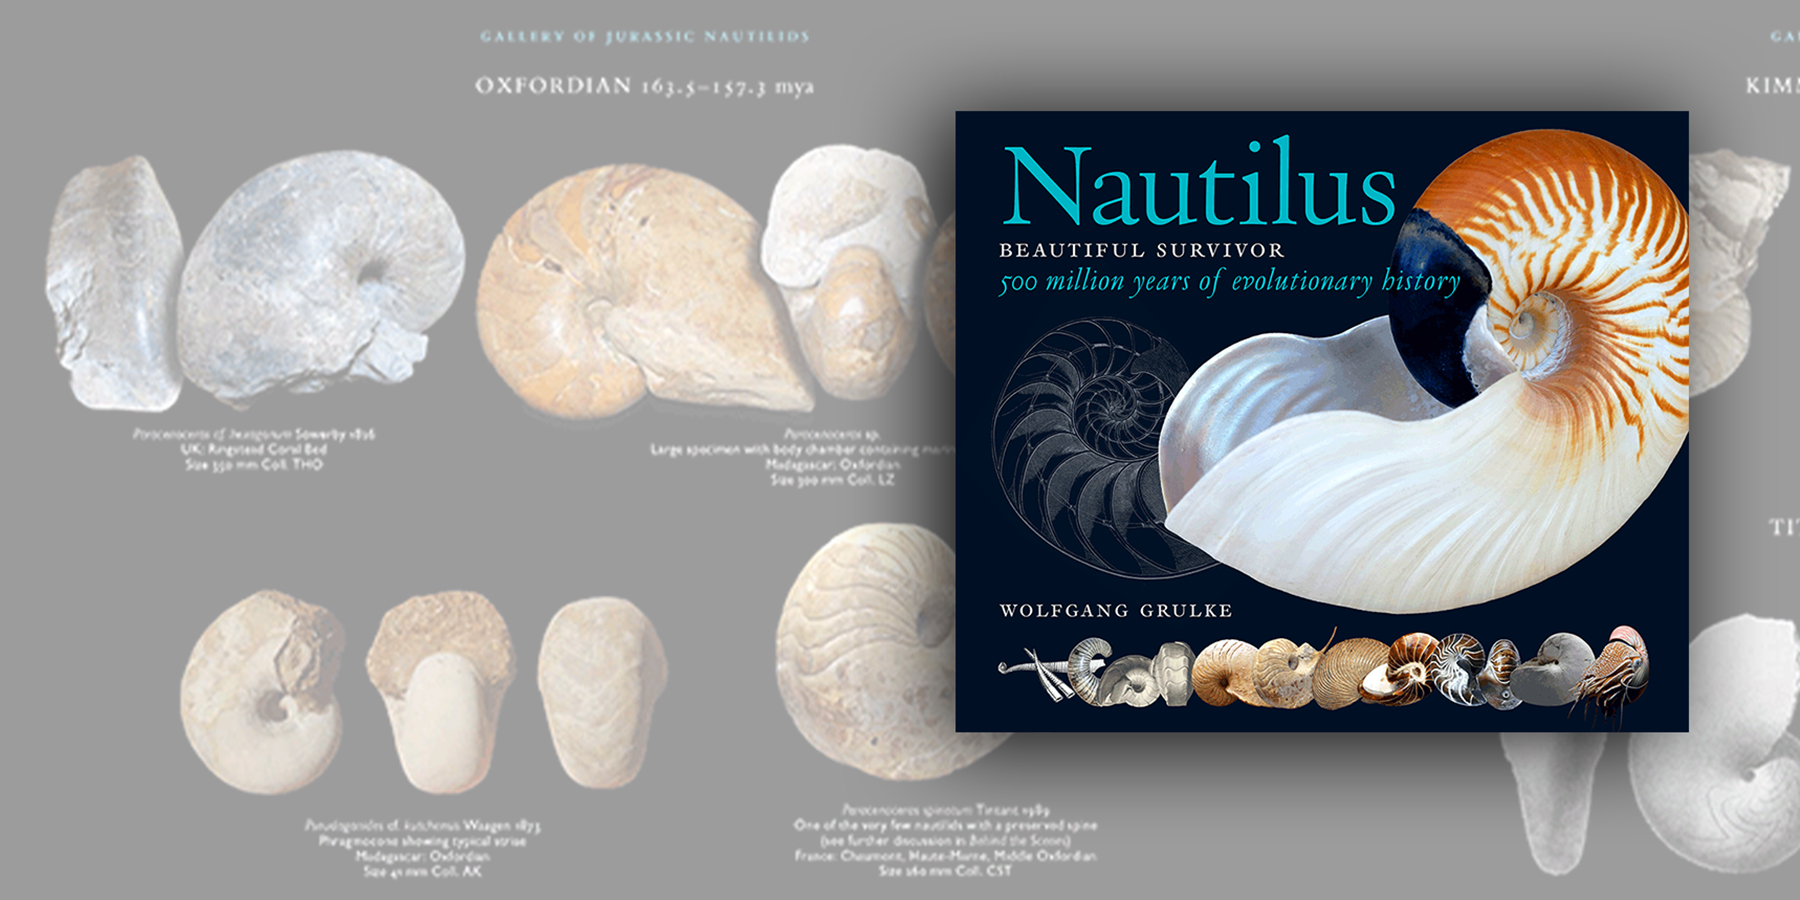 Nautilus – Beautiful Survivor